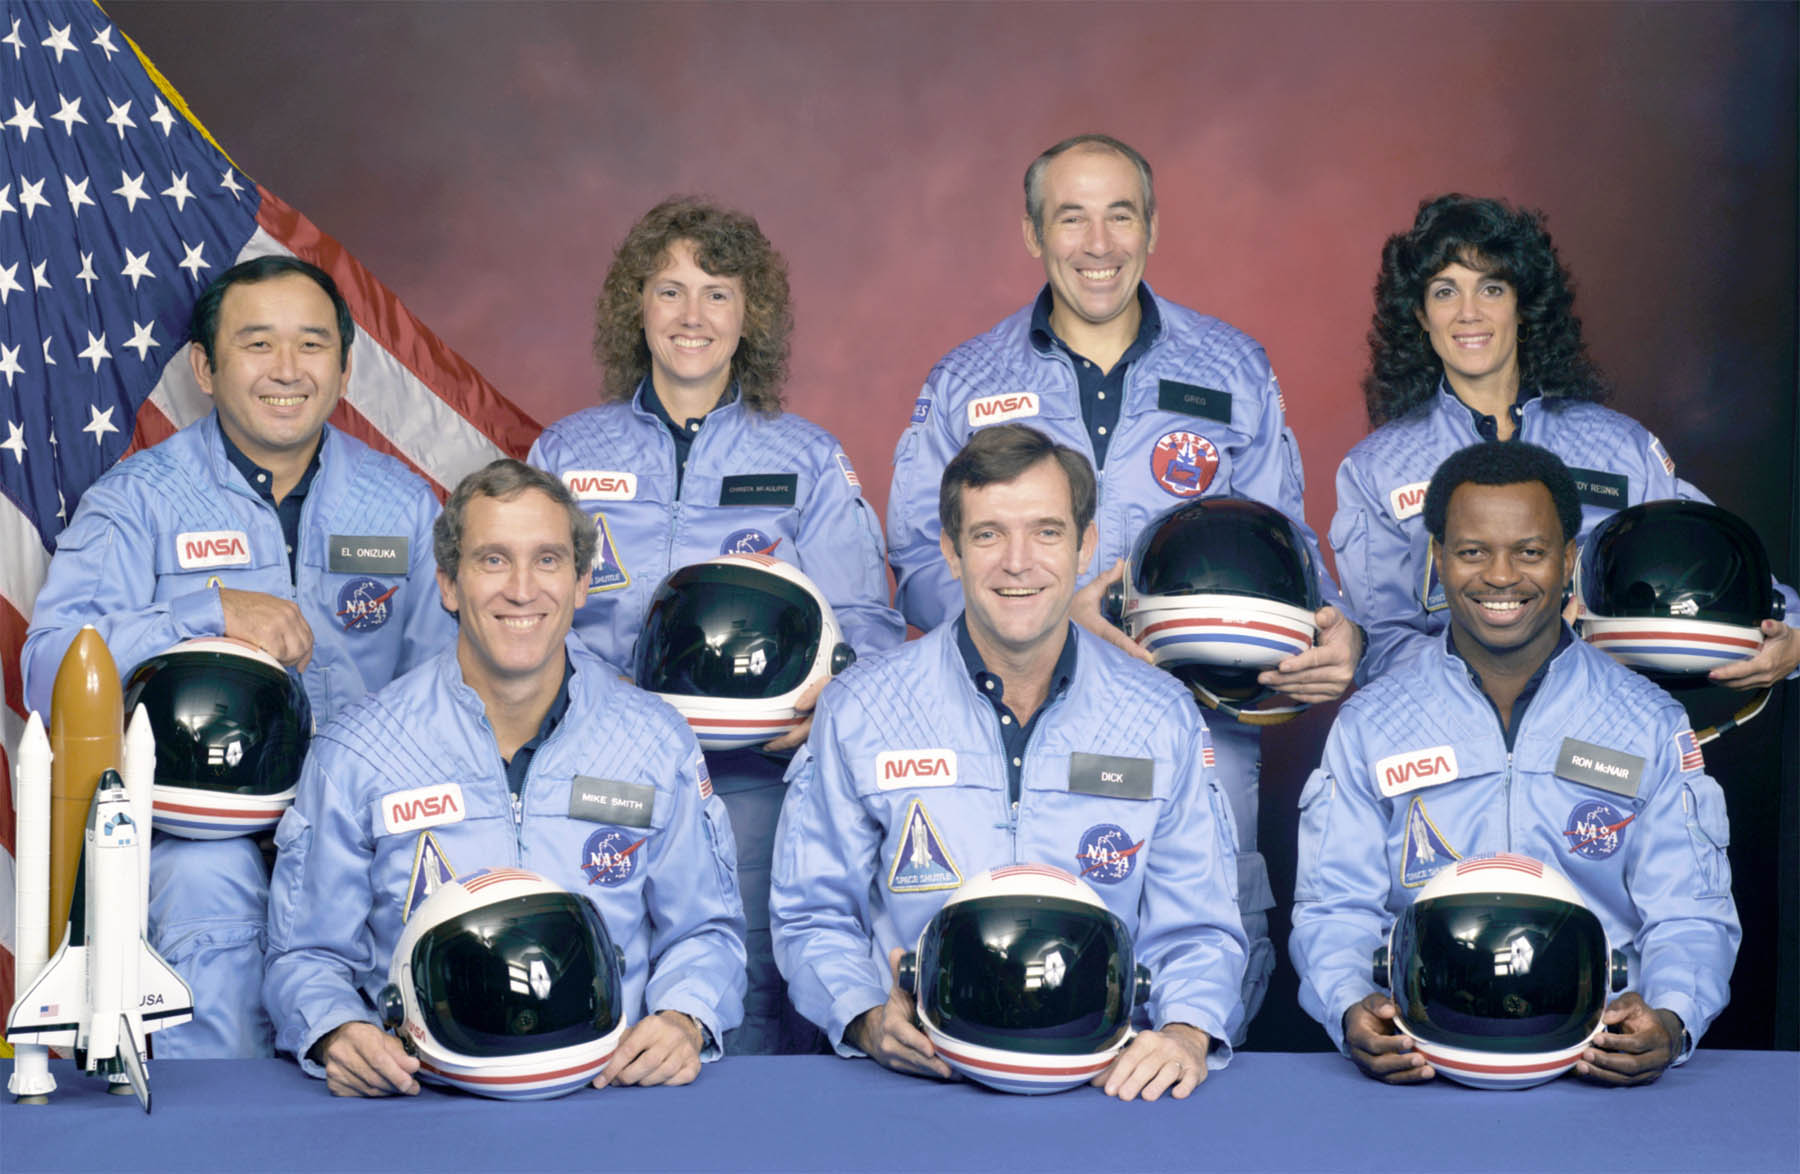 the challenger space shuttle mission - photo #33